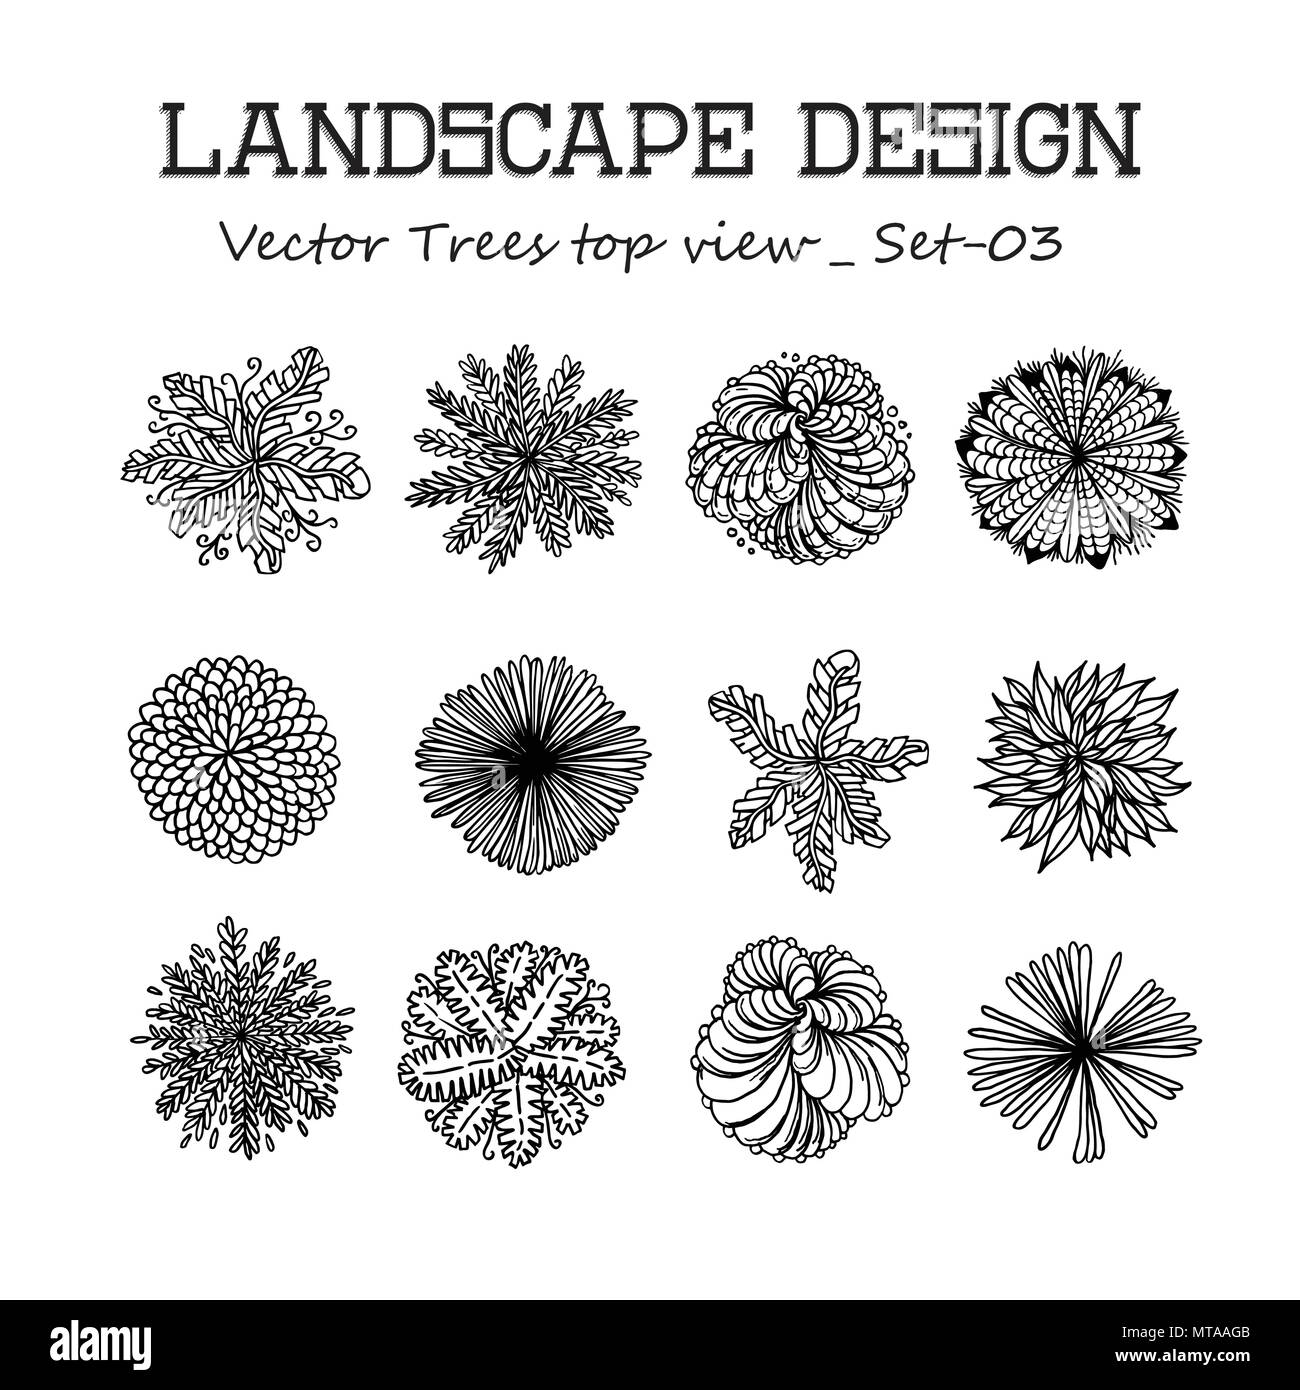 Trees top view. Different plants and trees vector set for architectural or landscape design. View from above Stock Vector